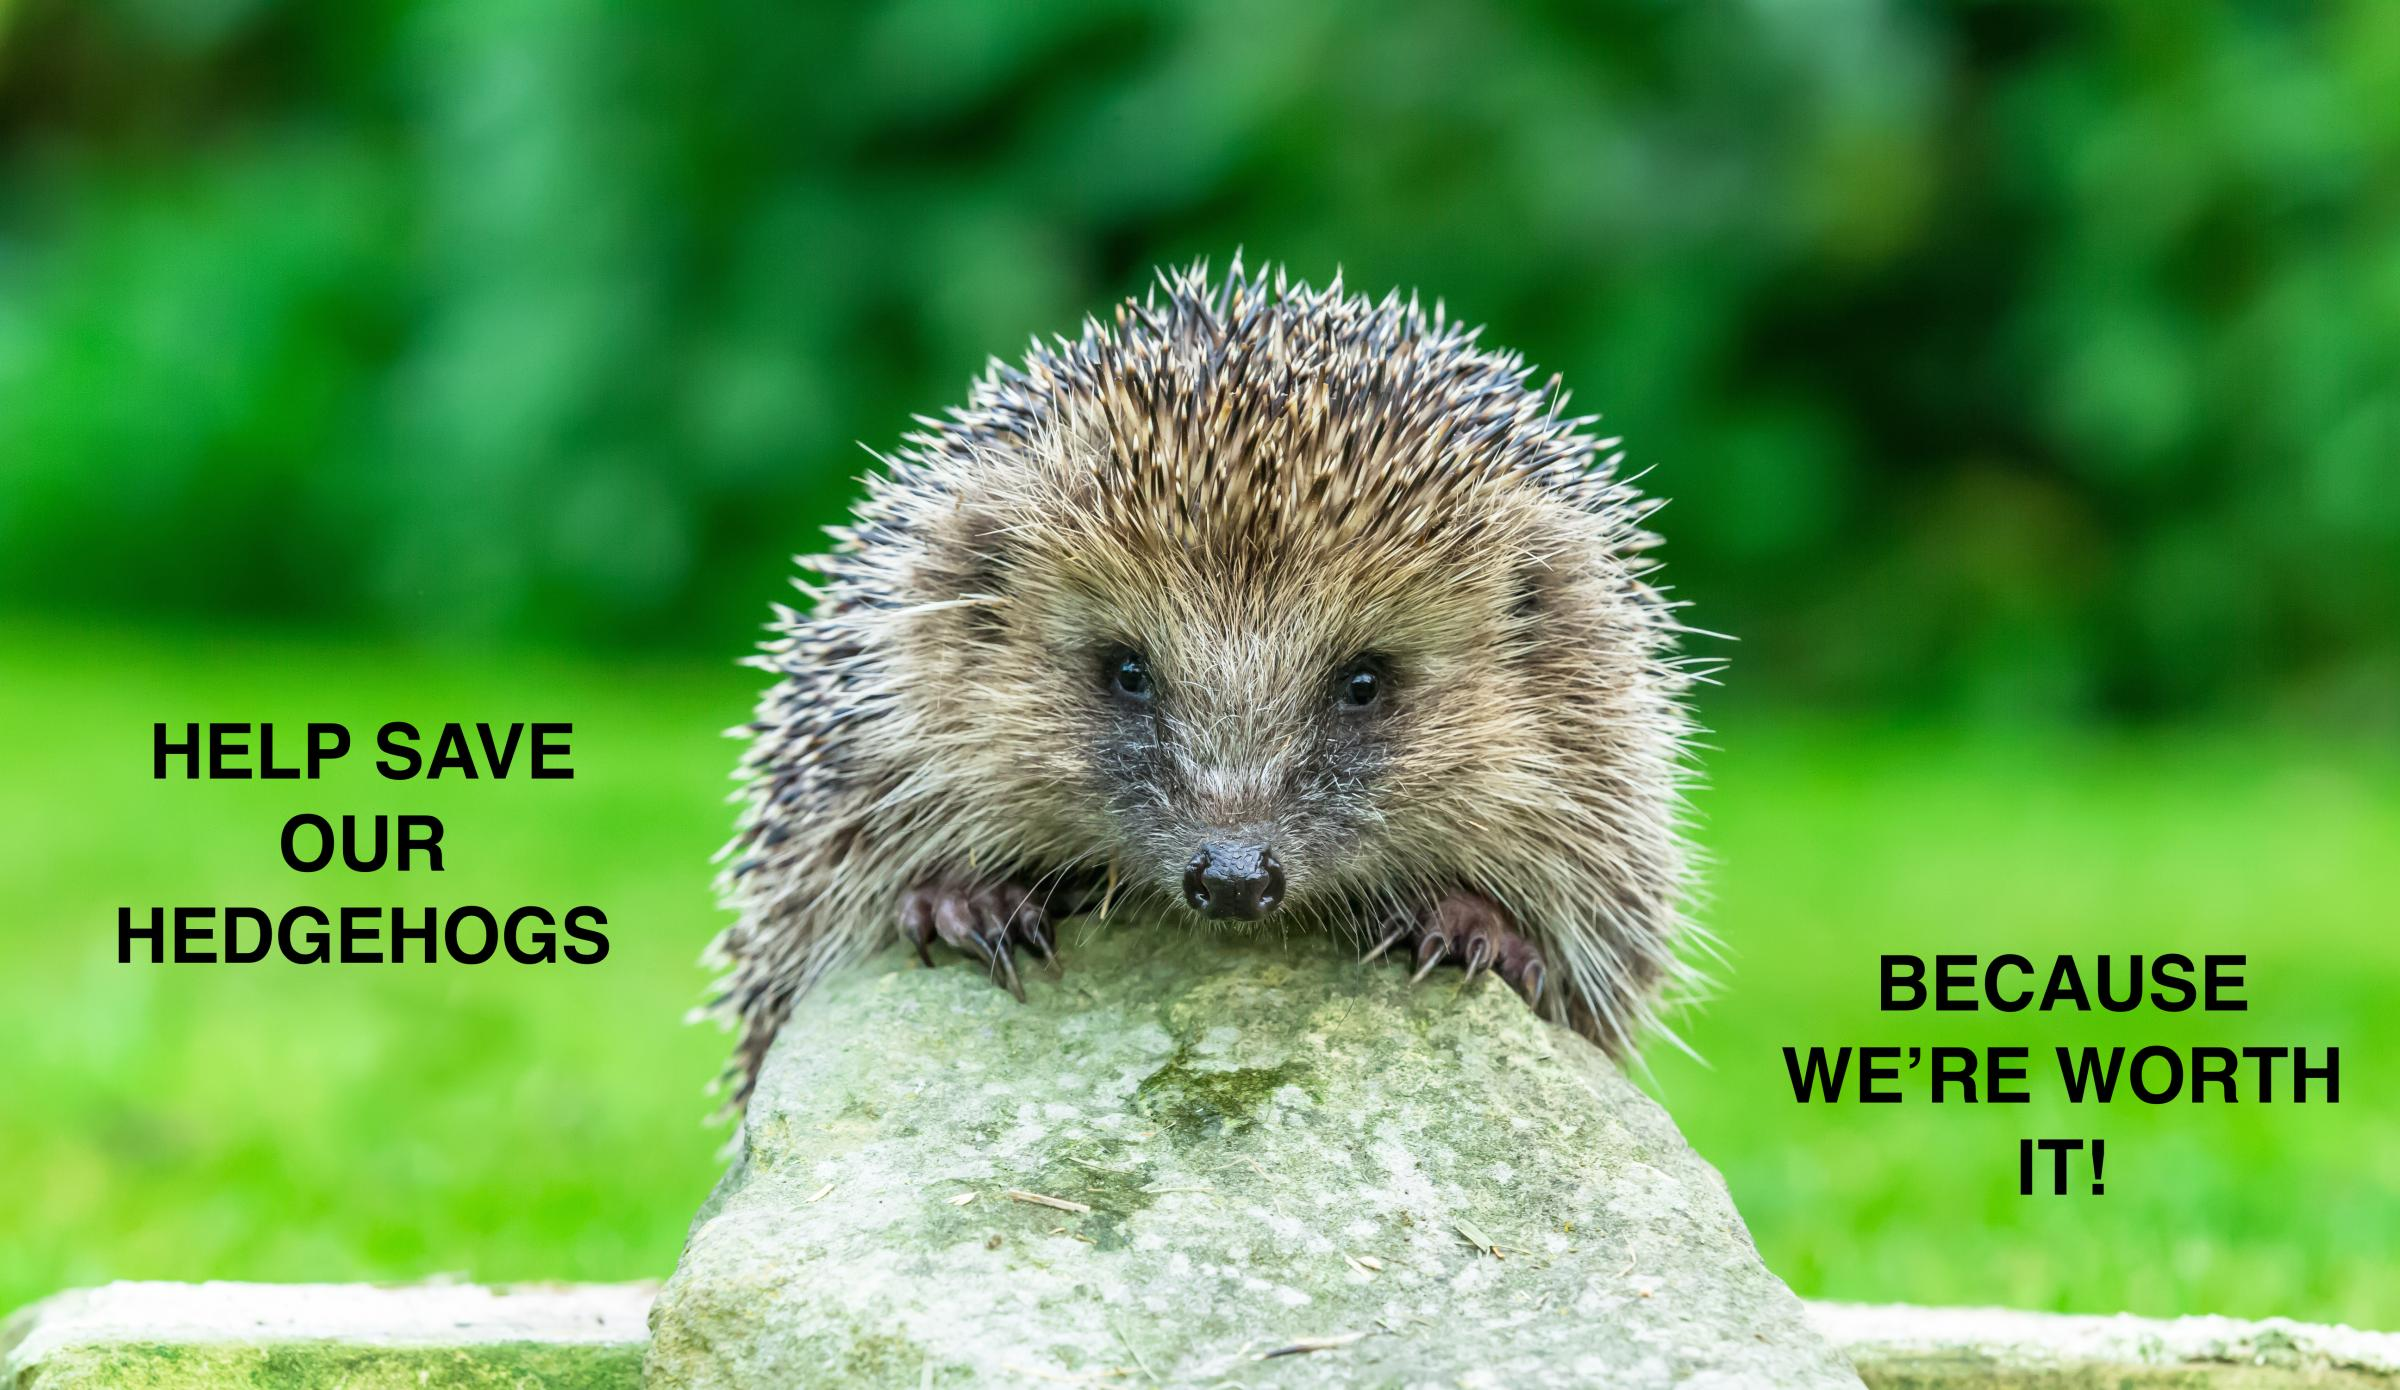 Help our Hedgehogs, because we're Worth it.